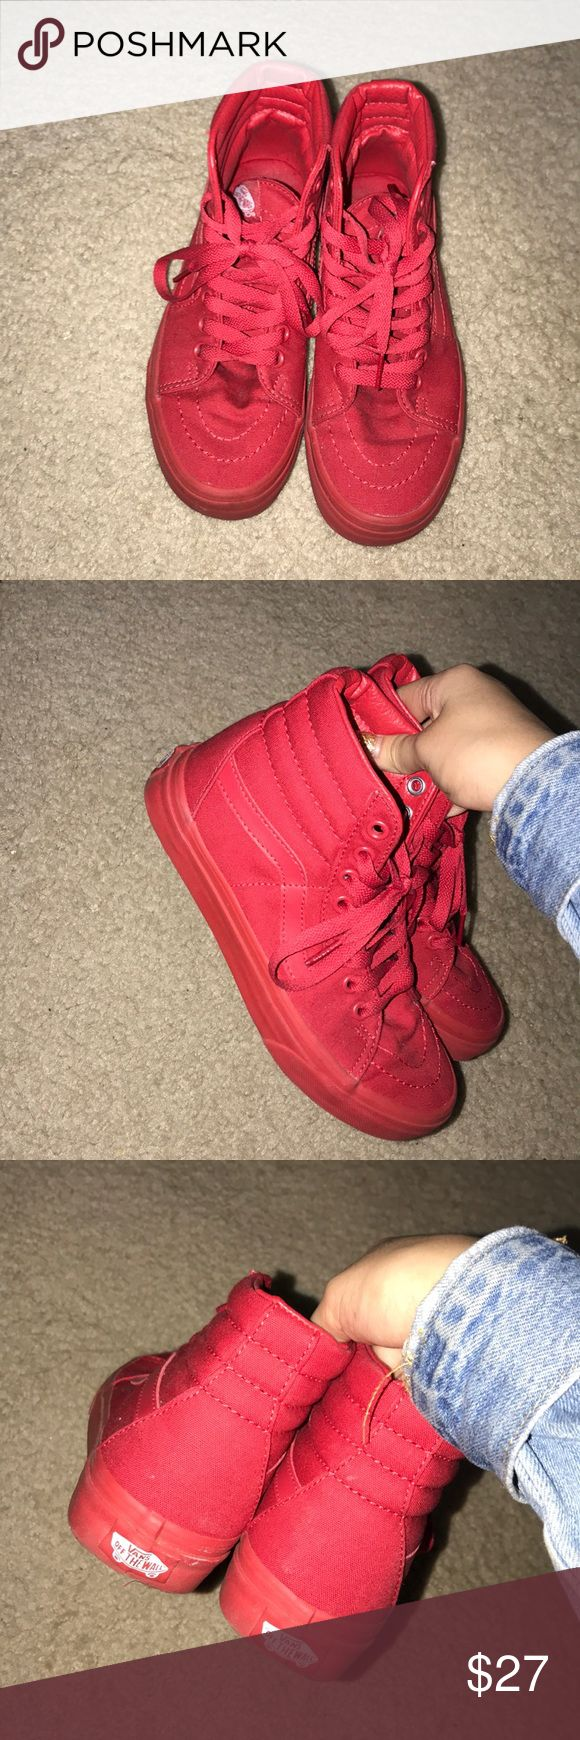 authentic all red high top vans new condition Vans Shoes Sneakers